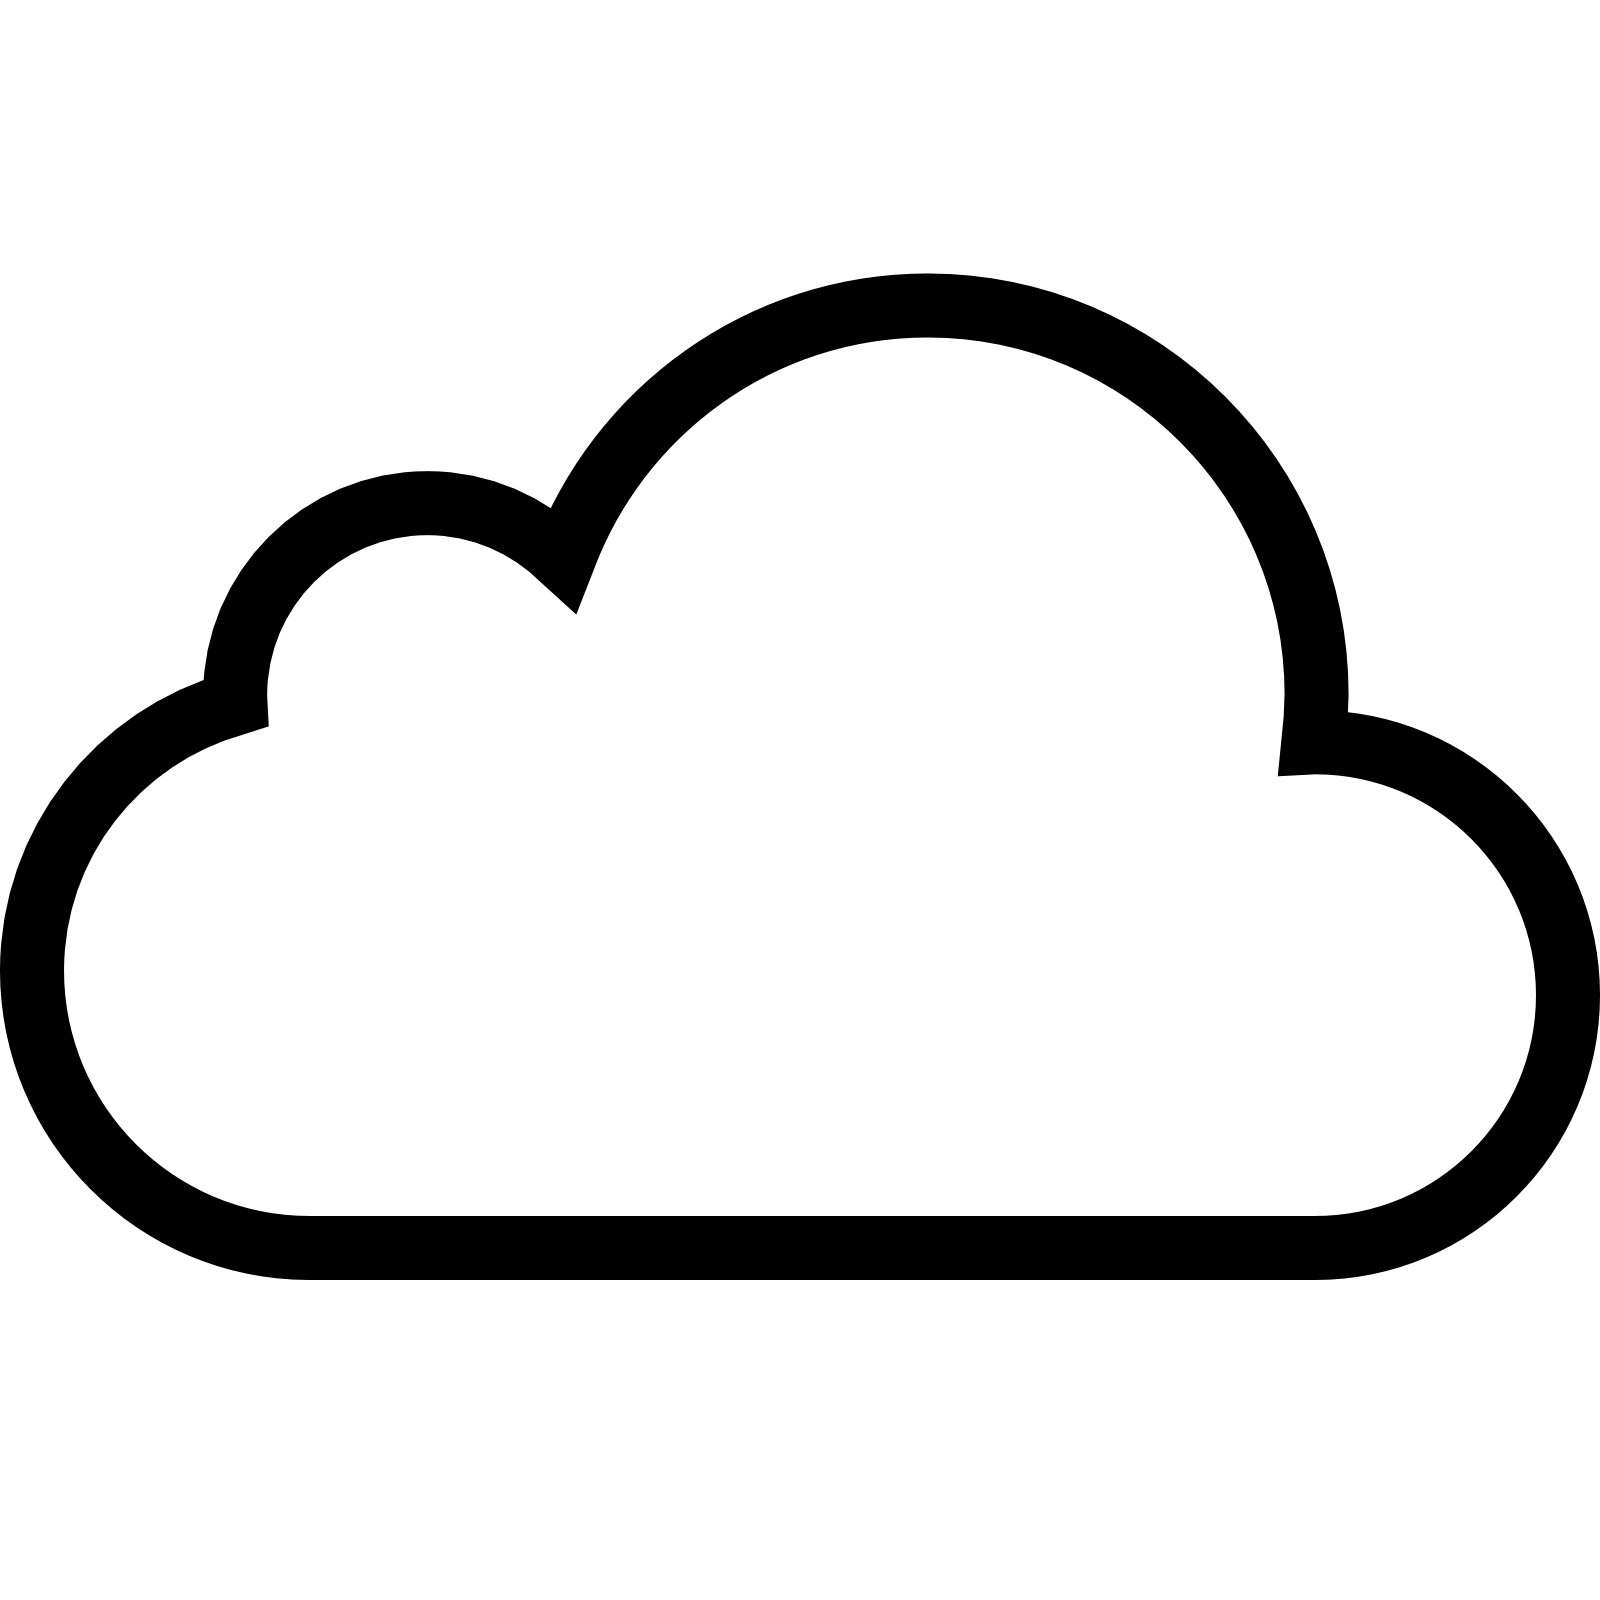 Clouds simple. Cloud cliparts free download